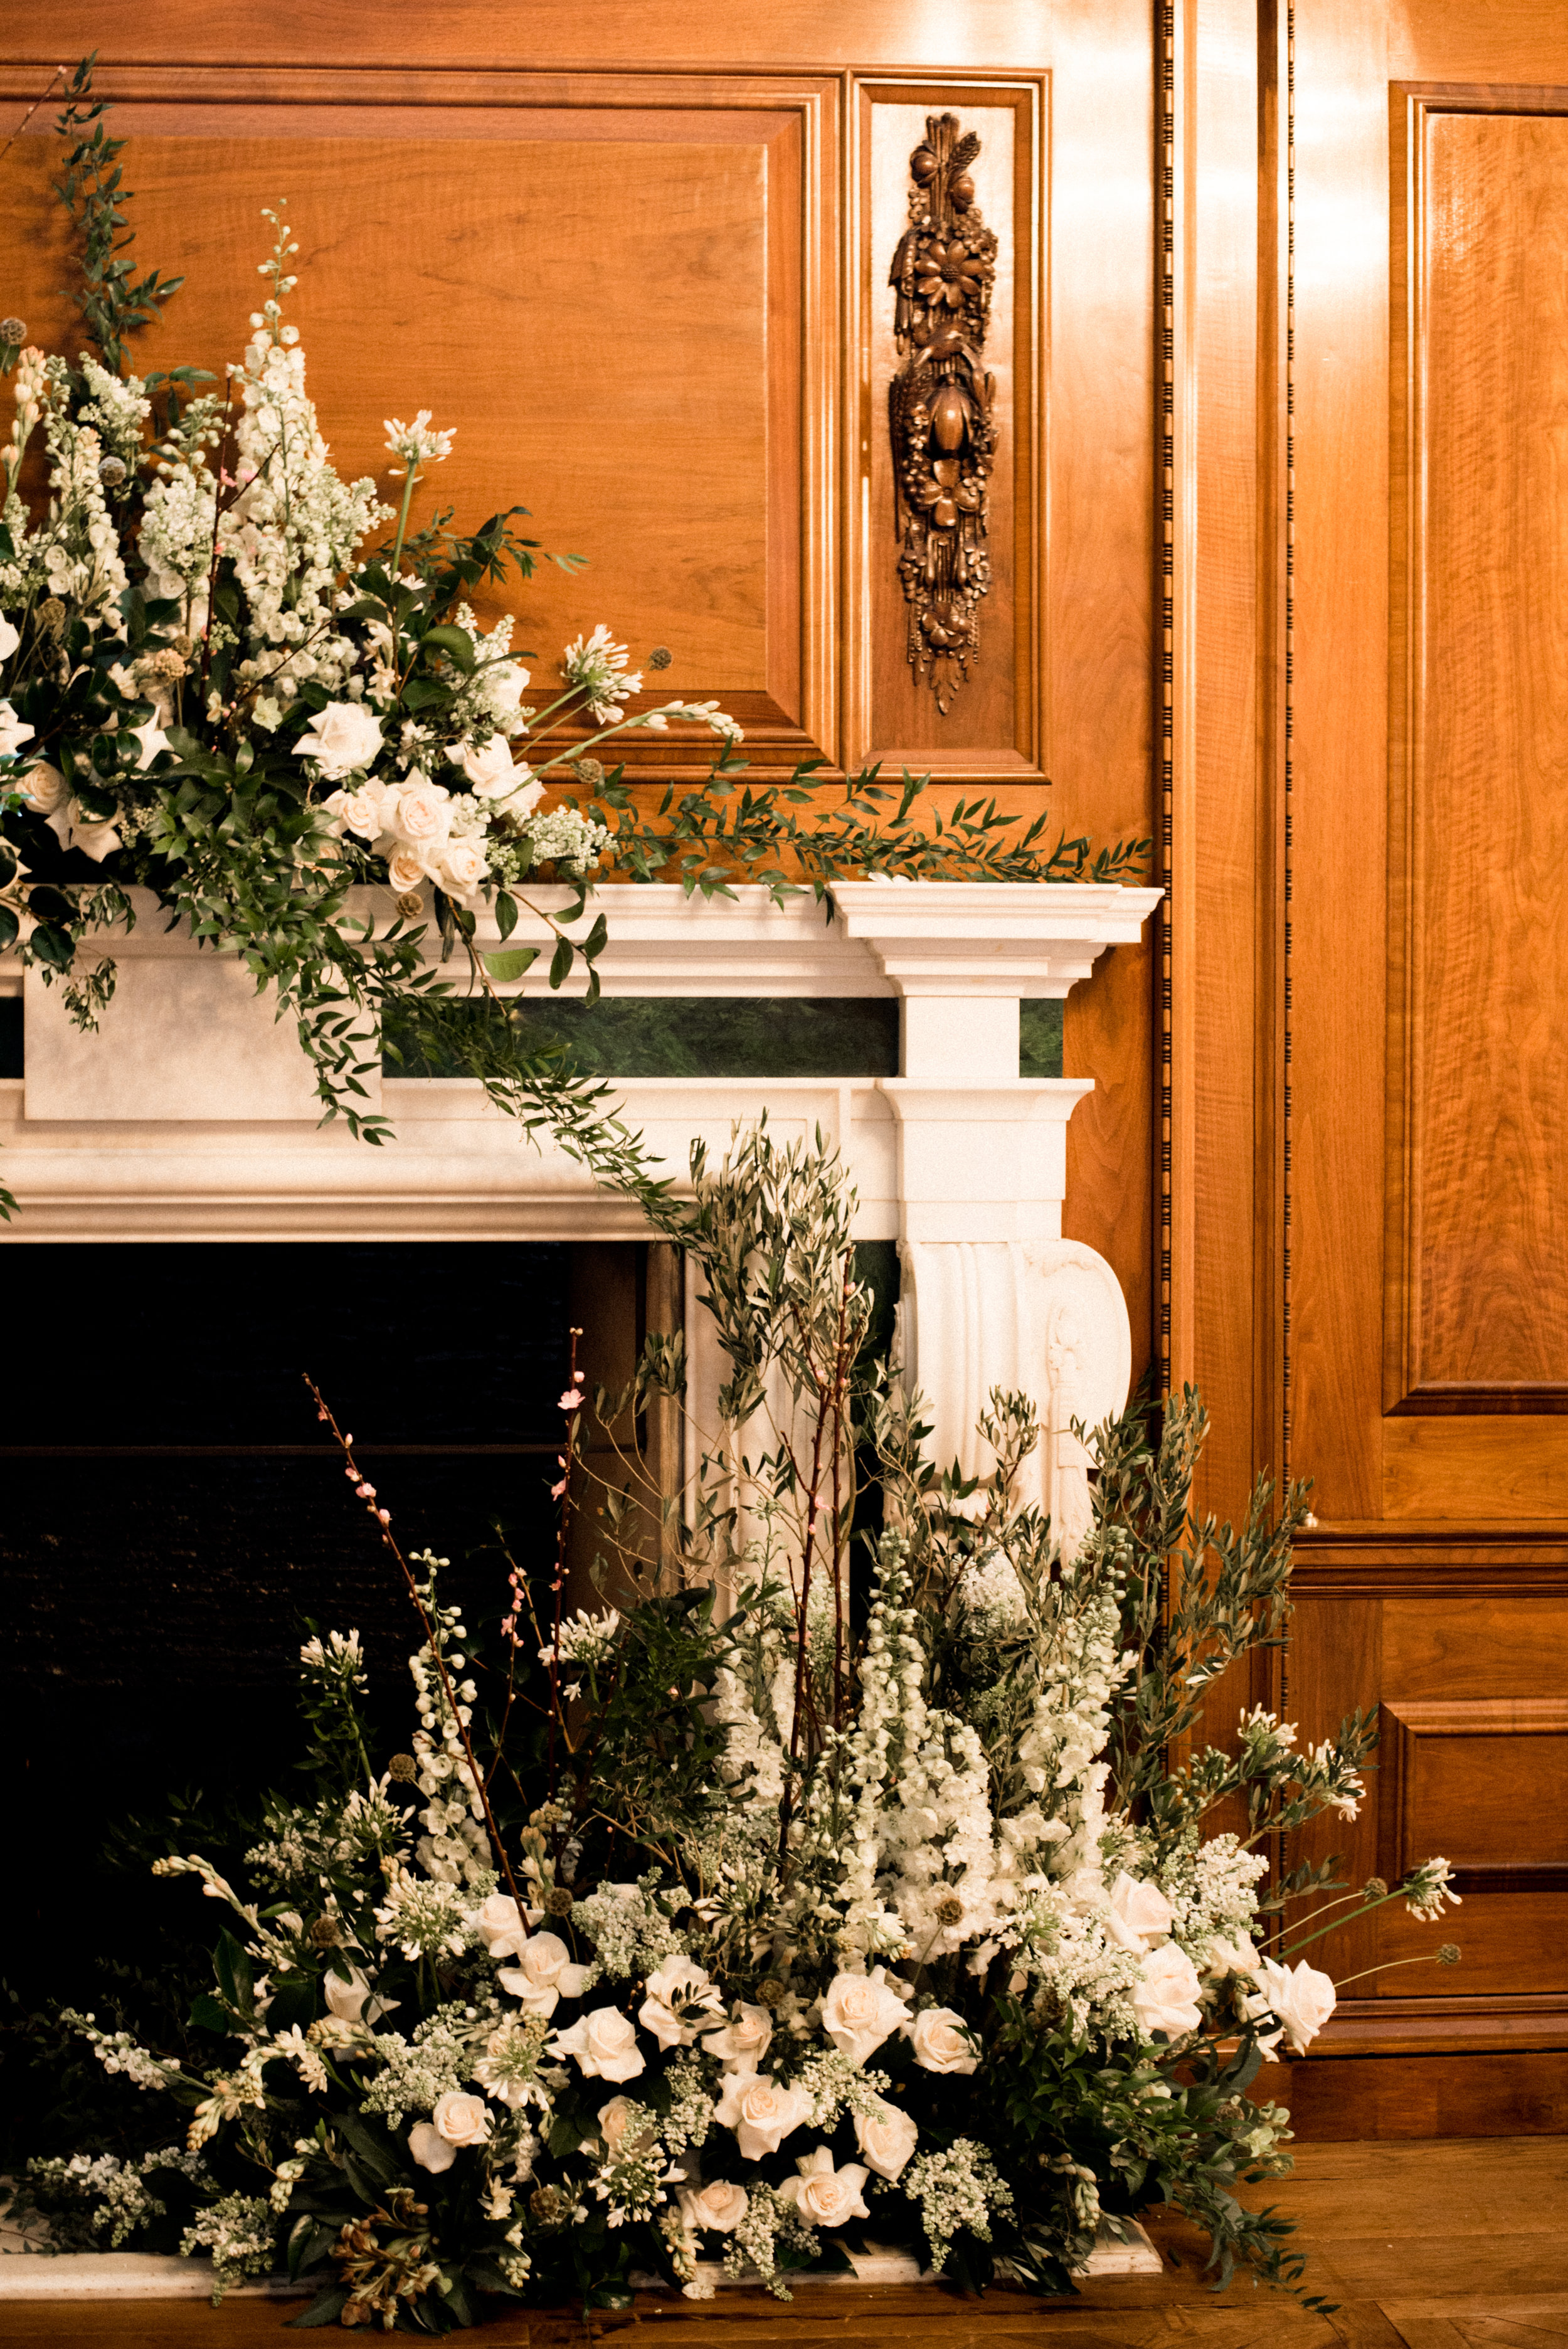 TheNed_Weddings-Grandirosa-Mantle-PhotographybyAshleeTaylor-1.jpg